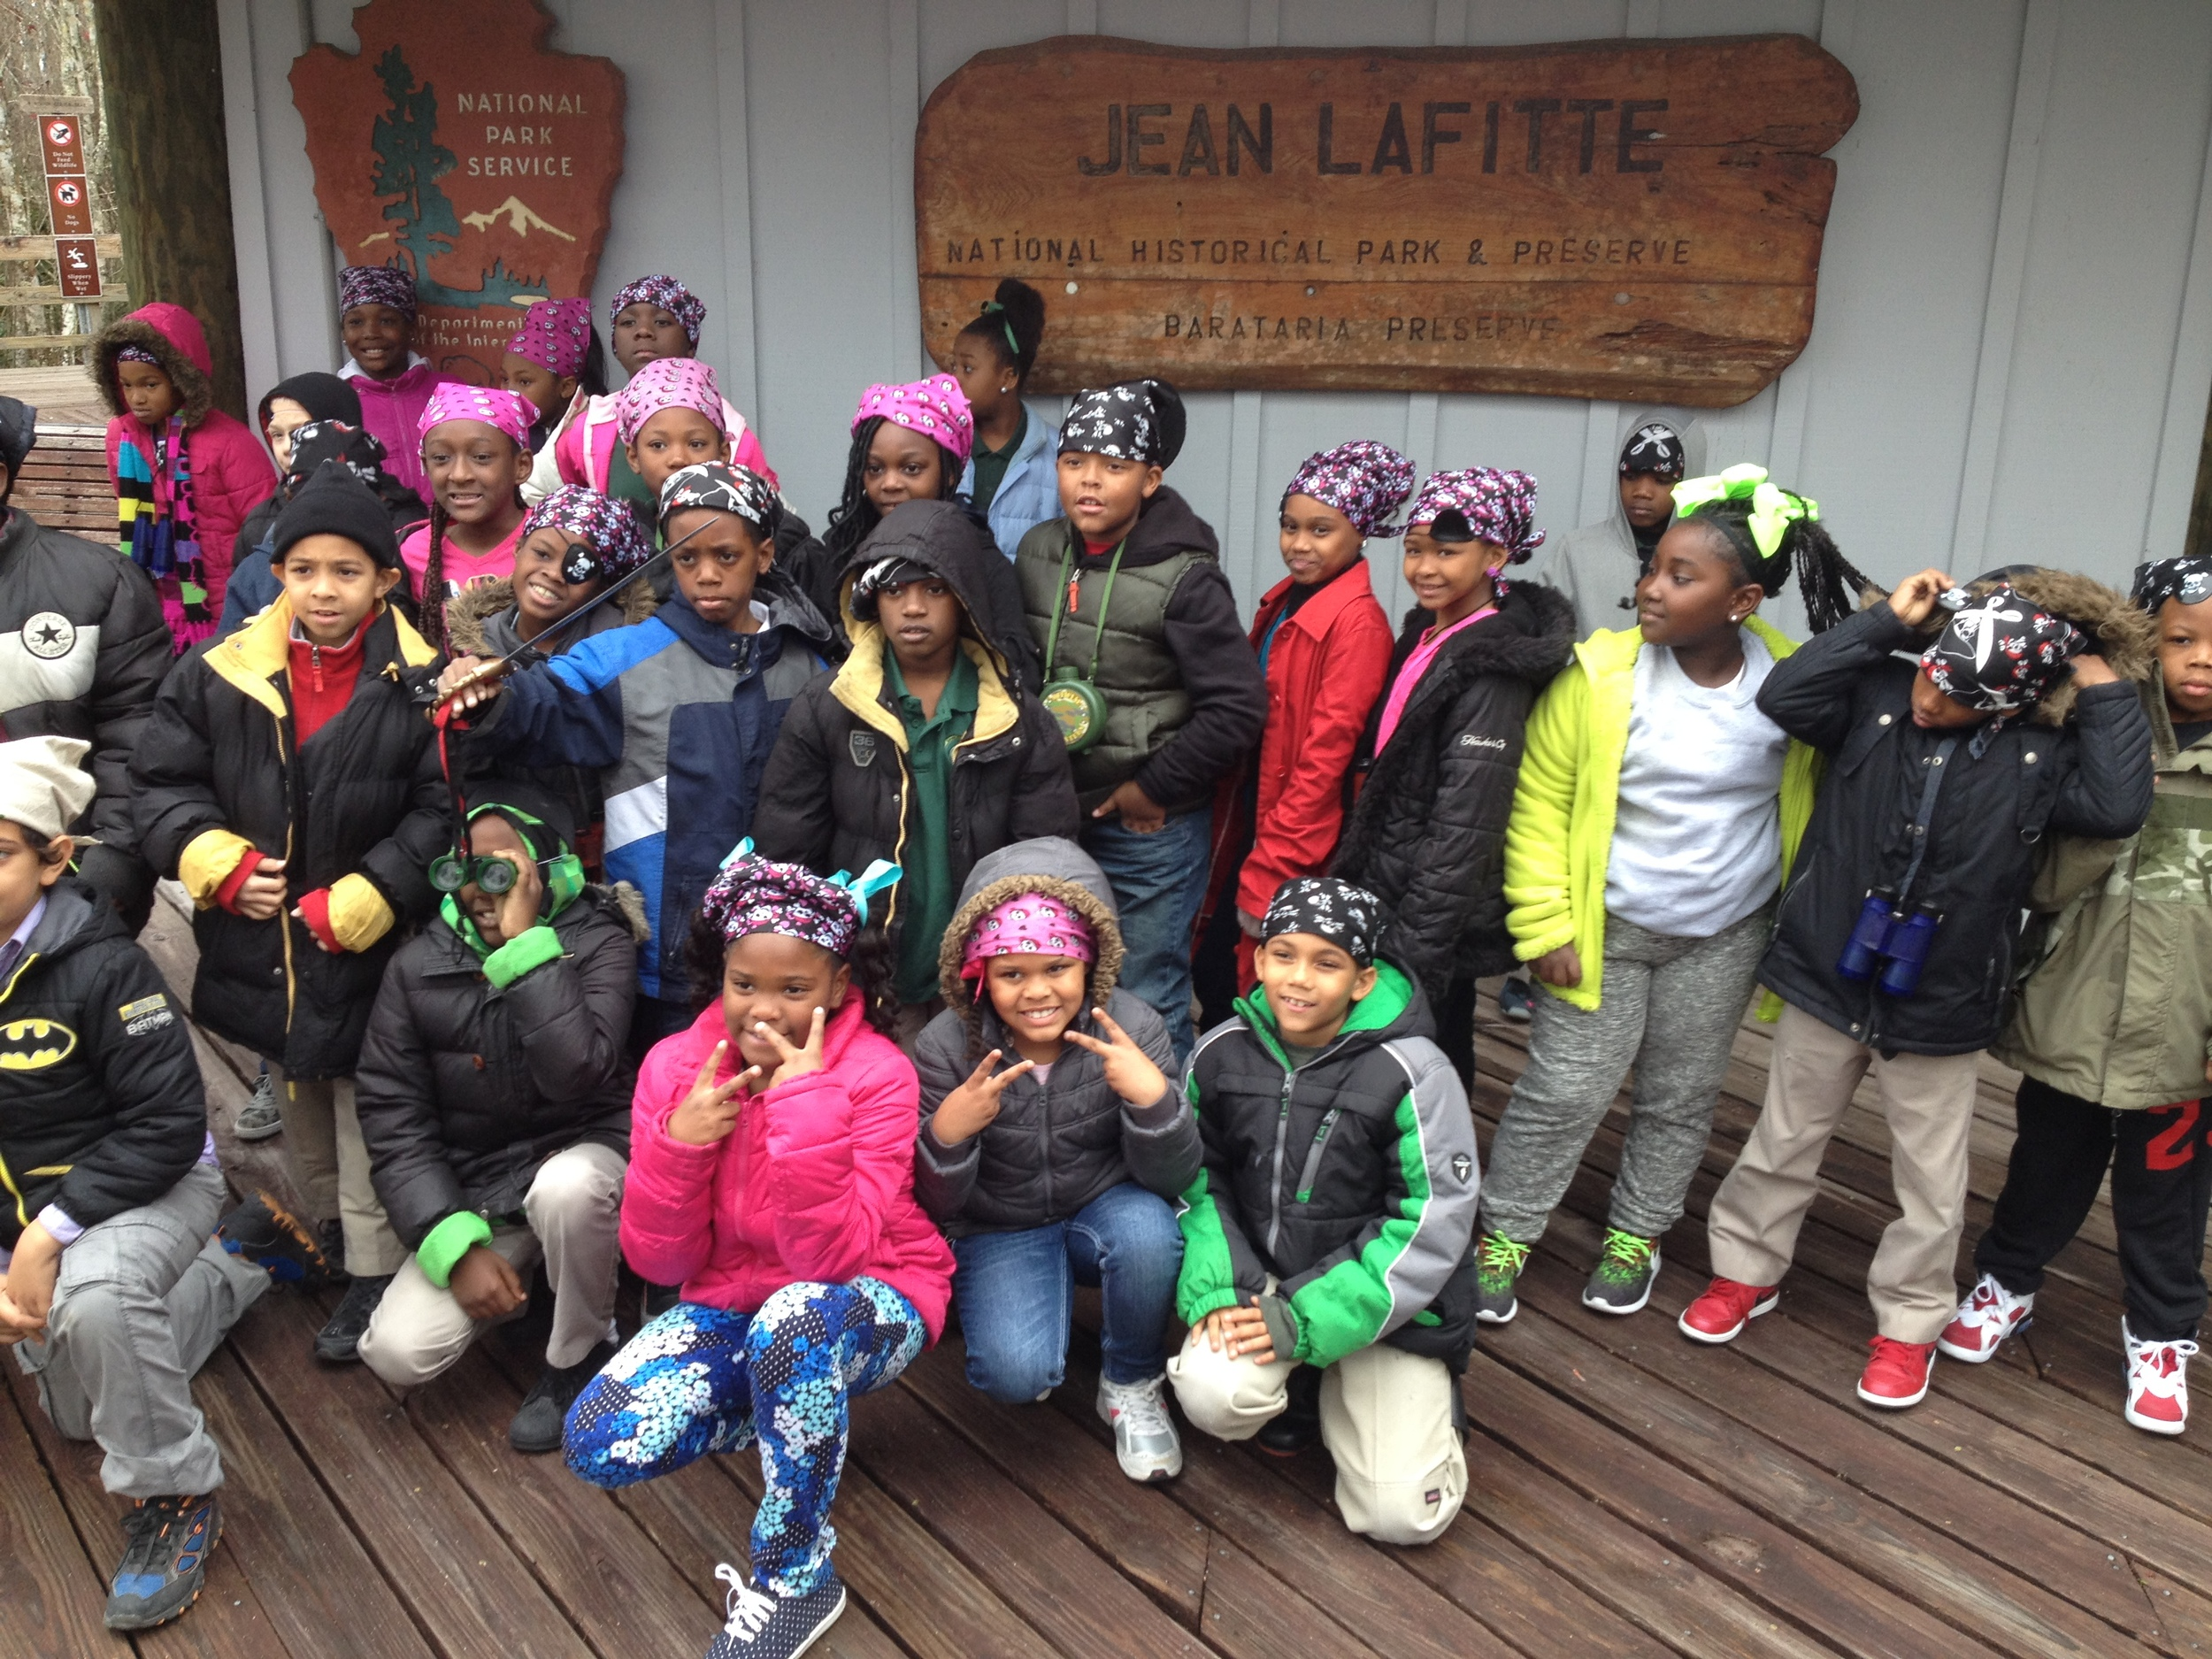 Arrrrr: Green 3rd Graders prepare to explore the swamps at Jean Lafitte National Historic Park and Preserve!